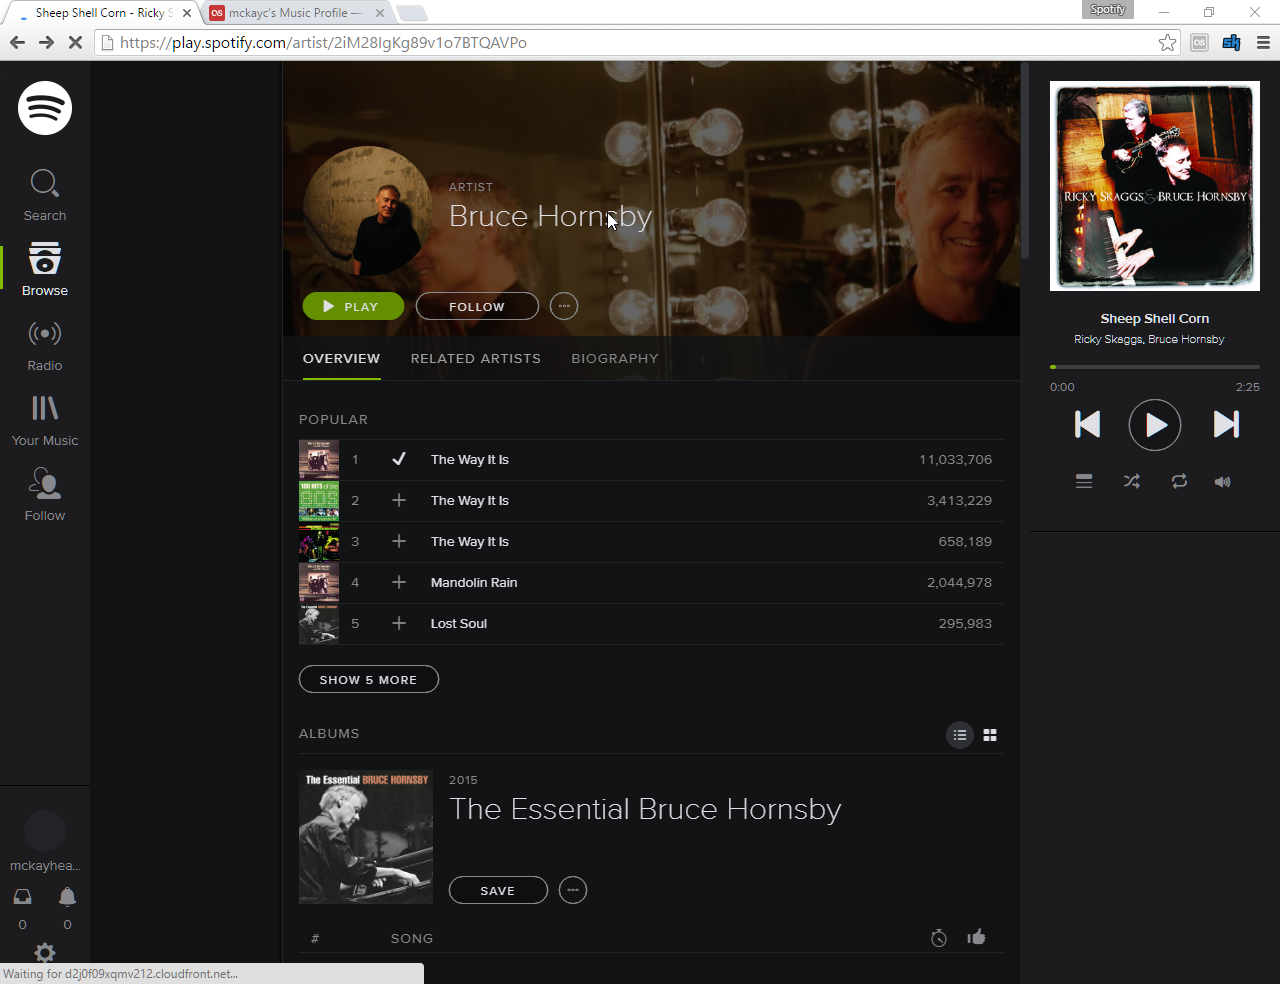 Here is a Spotify player available on all platforms (Windows